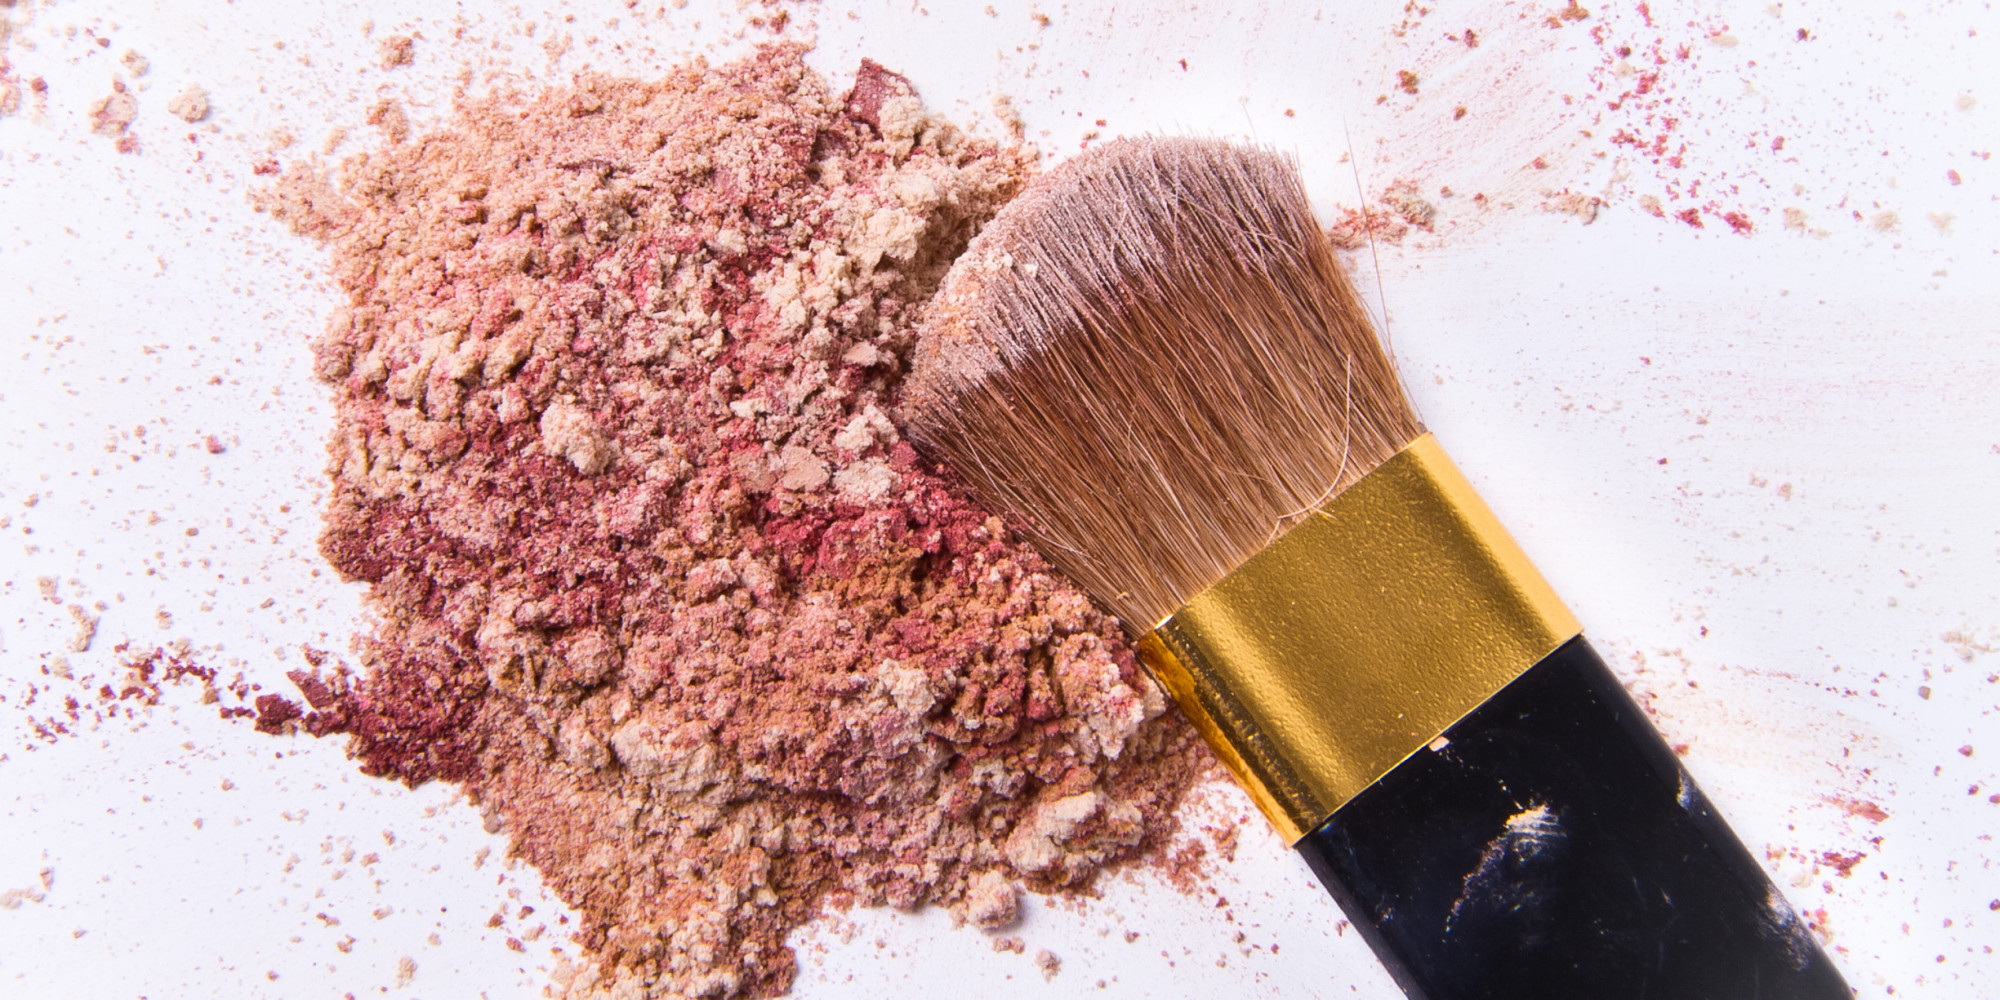 How to fix broken powder makeup with alcohol in four simple steps - How To Fix Broken Powder Makeup With Alcohol In Four Simple Steps Huffpost Uk